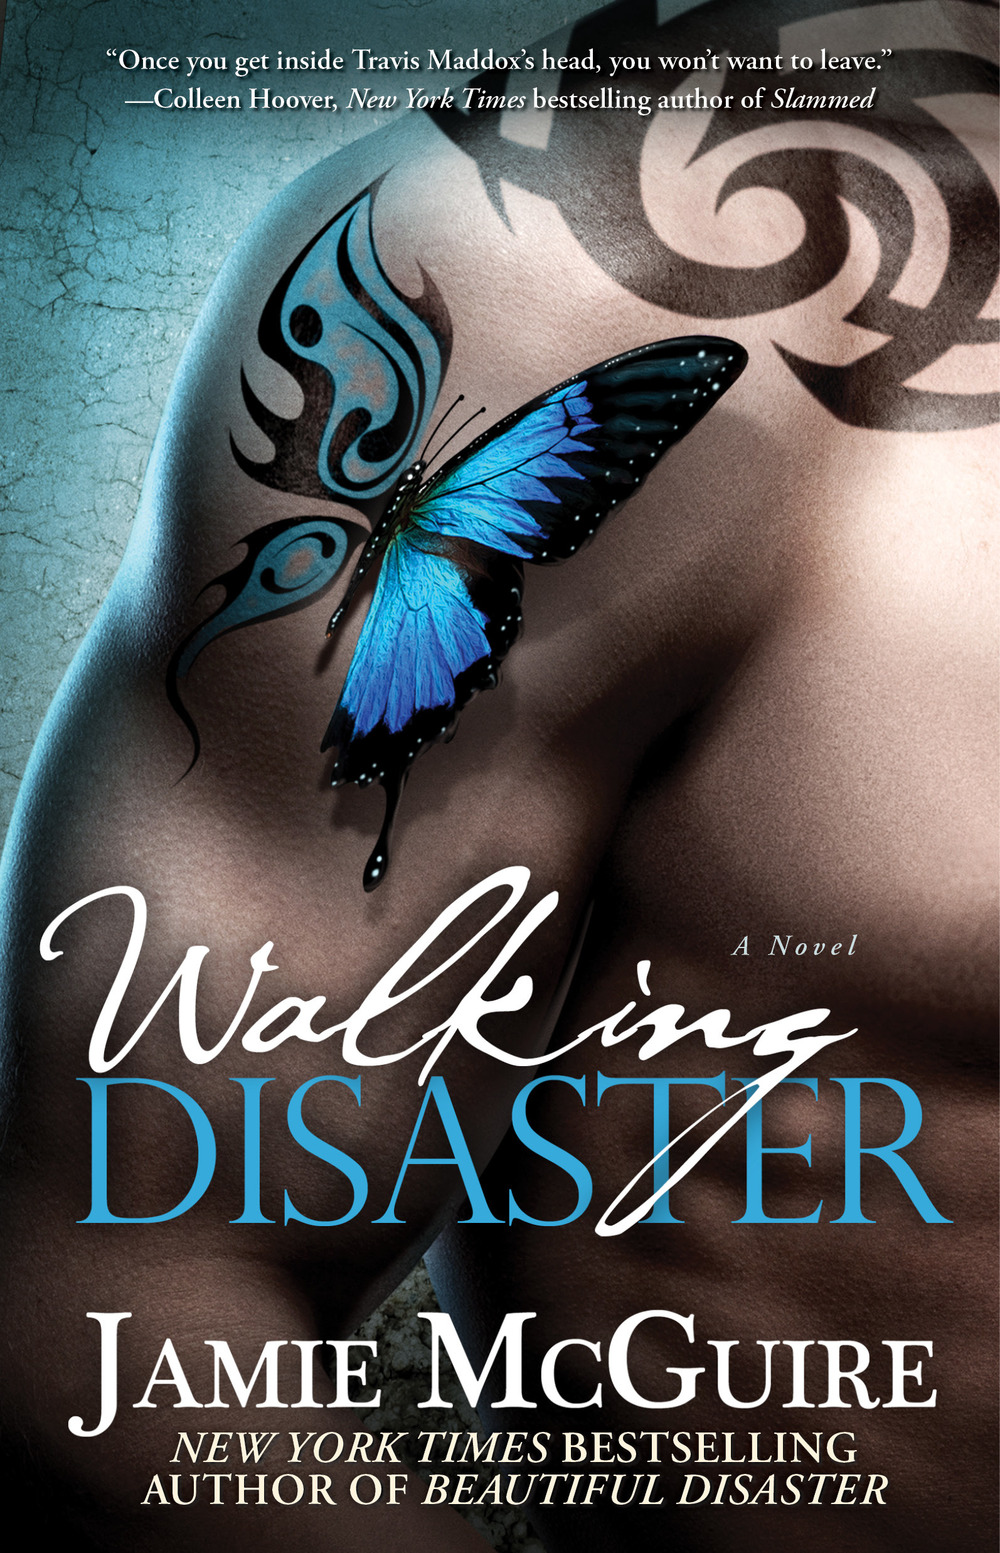 Walking Disaster by Jamie McGuire {Book Review}